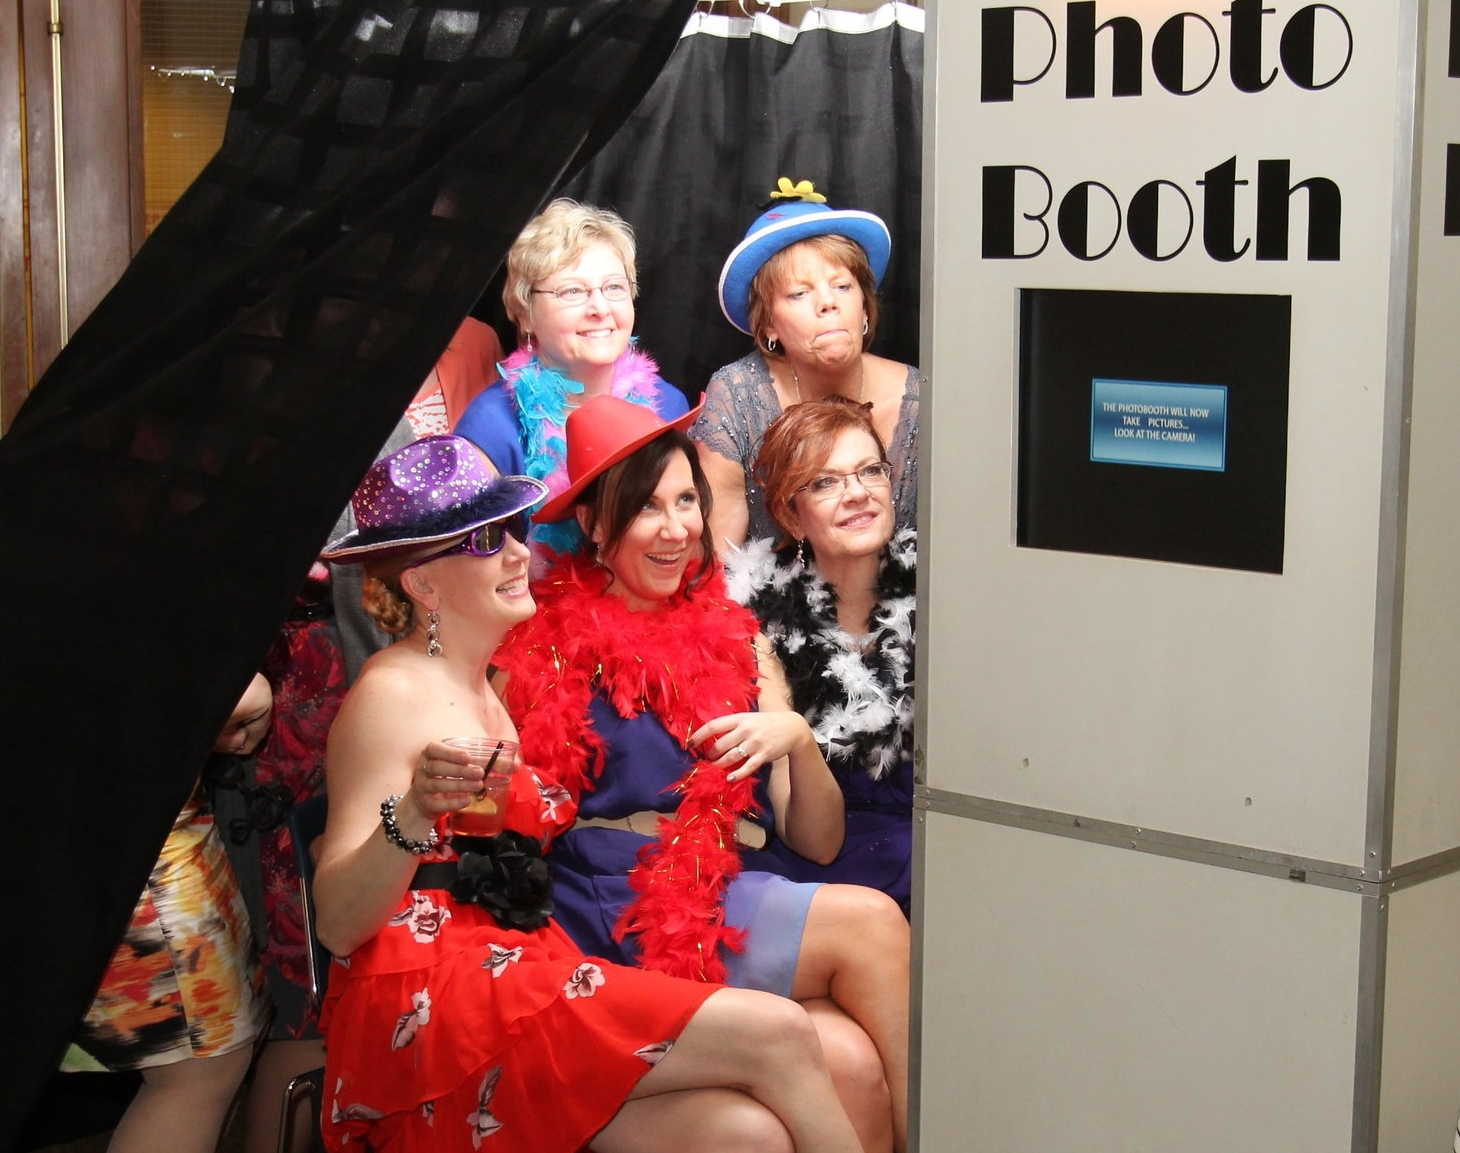 PhotoBooth - 5 PhotoBooths to choose from! The Classic, Vintage, Modern, RingO, or Mirror. Your guests will have the most amazing time! Includes unlimited pictures, unlimited photostrips, props. scrapbook, digital copy of all pictures, and photobooth attendant. ($595 value)